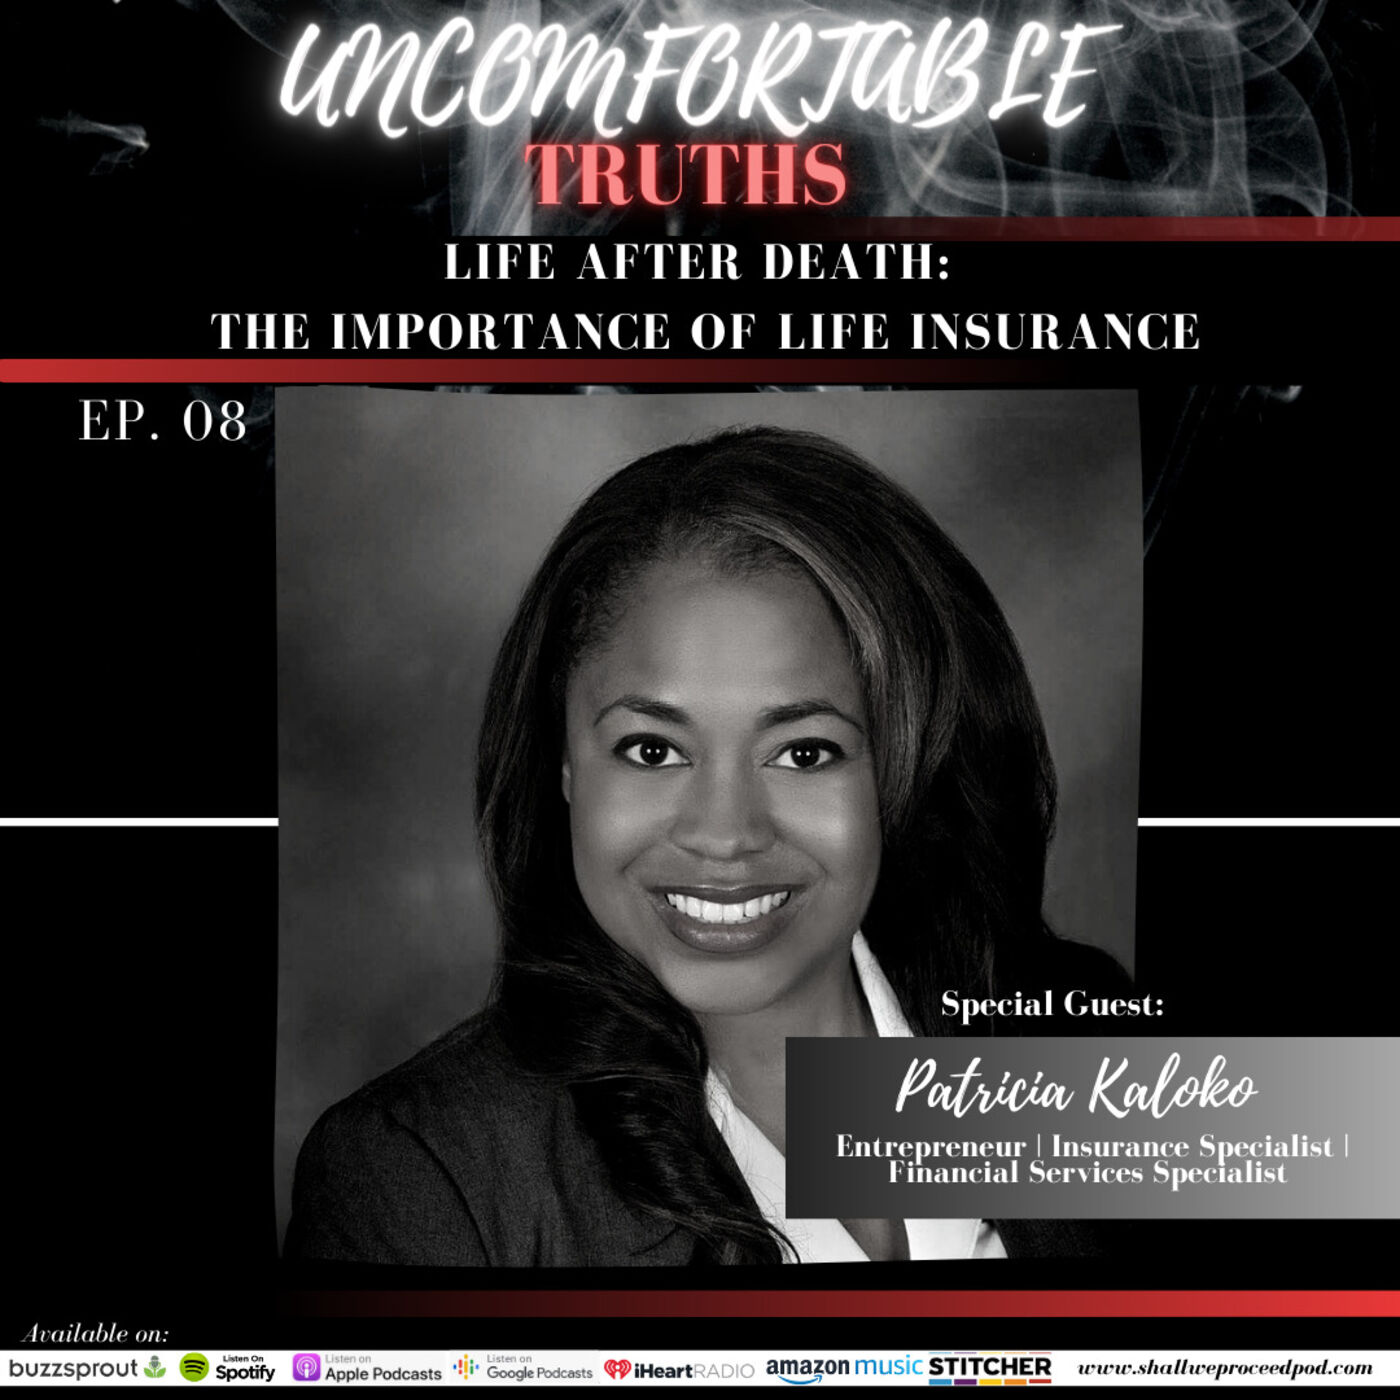 Life After Death: The Importance of Life Insurance w/ Patricia Kaloko